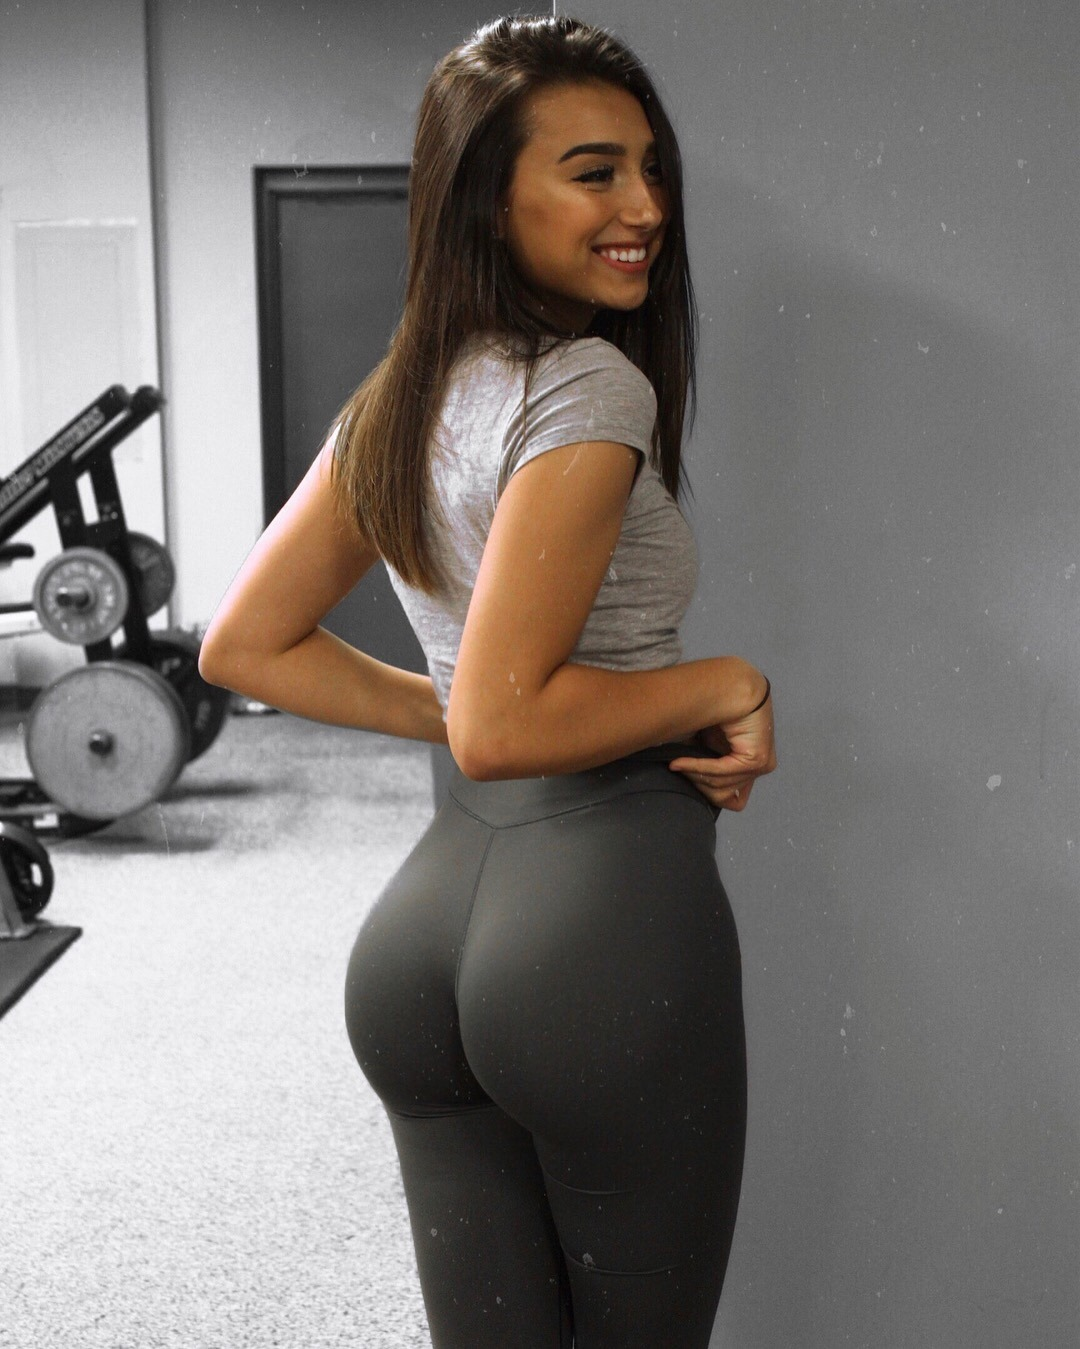 Amazing ass babe of the day